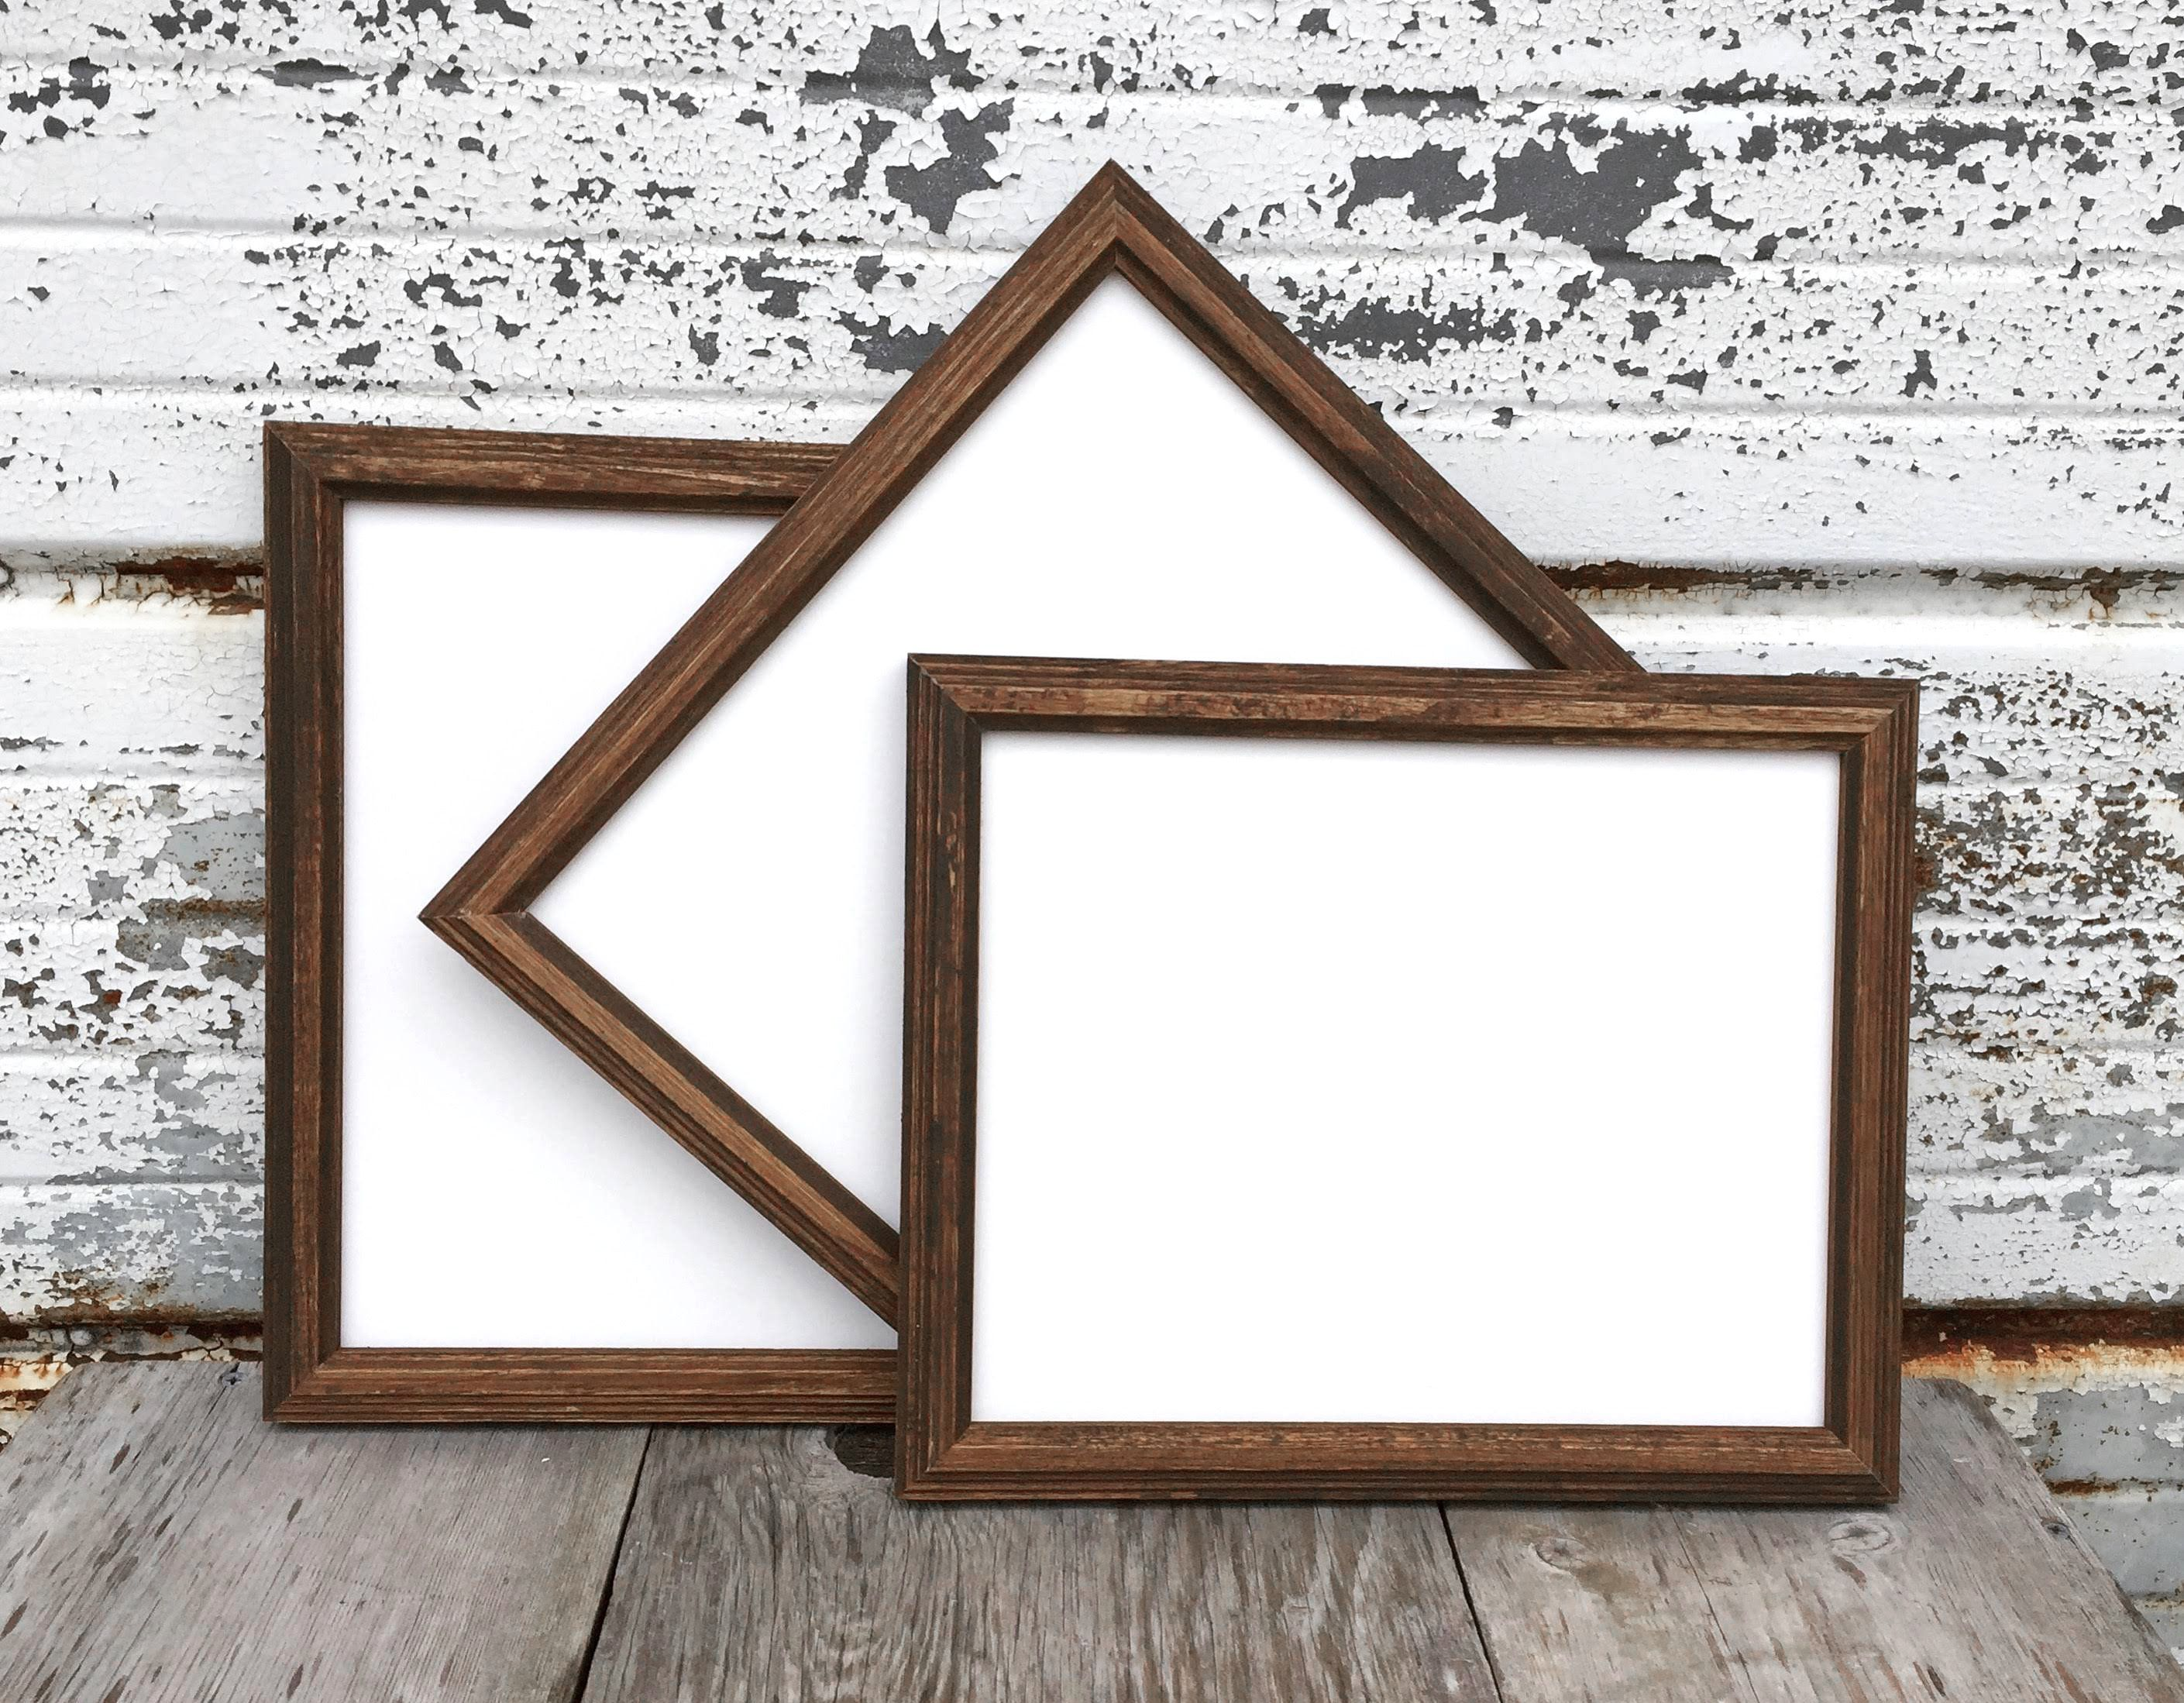 Set Of Three Wooden Picture Frames Rustic Wood Frame You Choose The Size From 5x7 8x10 8 5x11 10x13 Wood Picture Frames Wooden Picture Frames Rustic Wood Frame